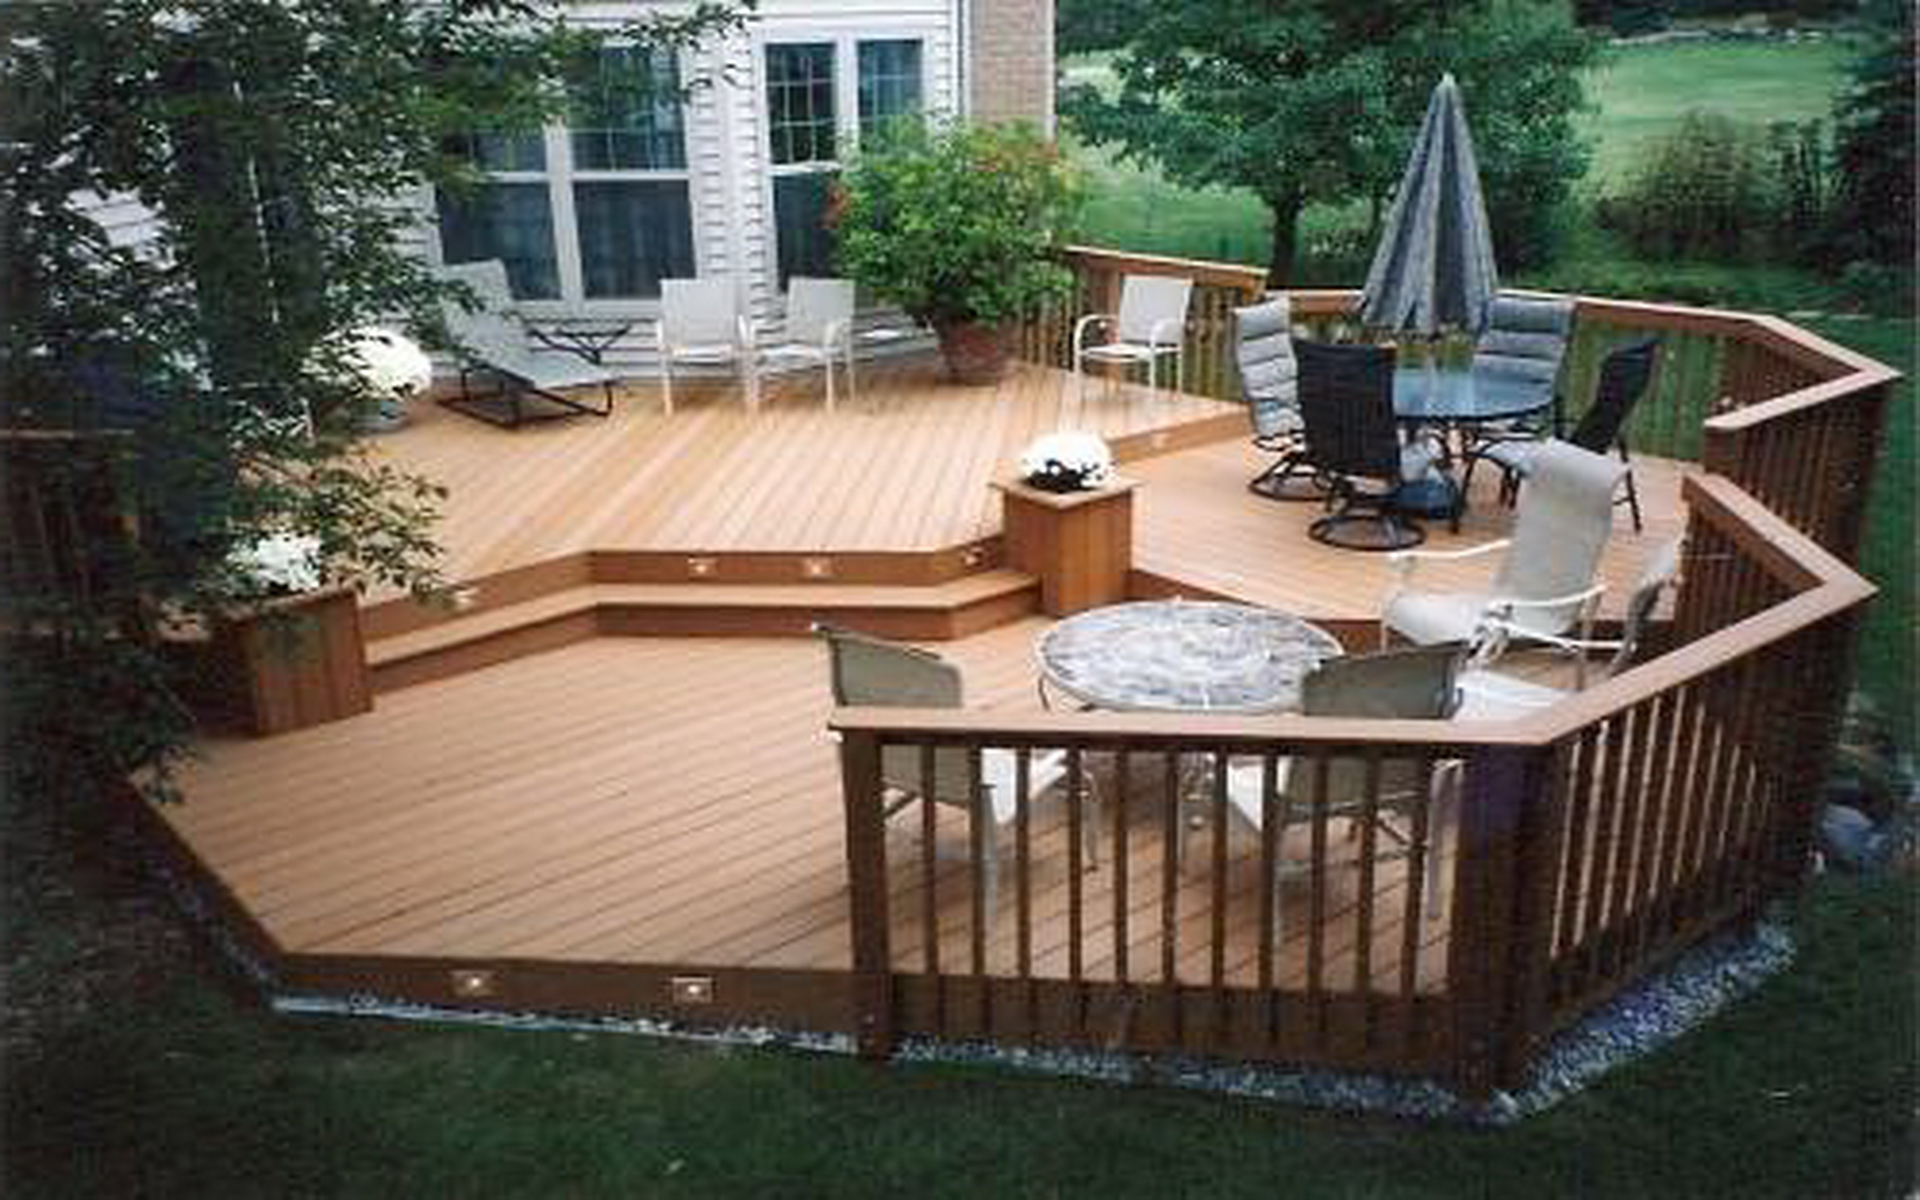 Outside Deck Designs Backyard Patio Pictures Ideas With Hot Tub And pertaining to 12 Clever Tricks of How to Build Backyard Wood Patio Ideas